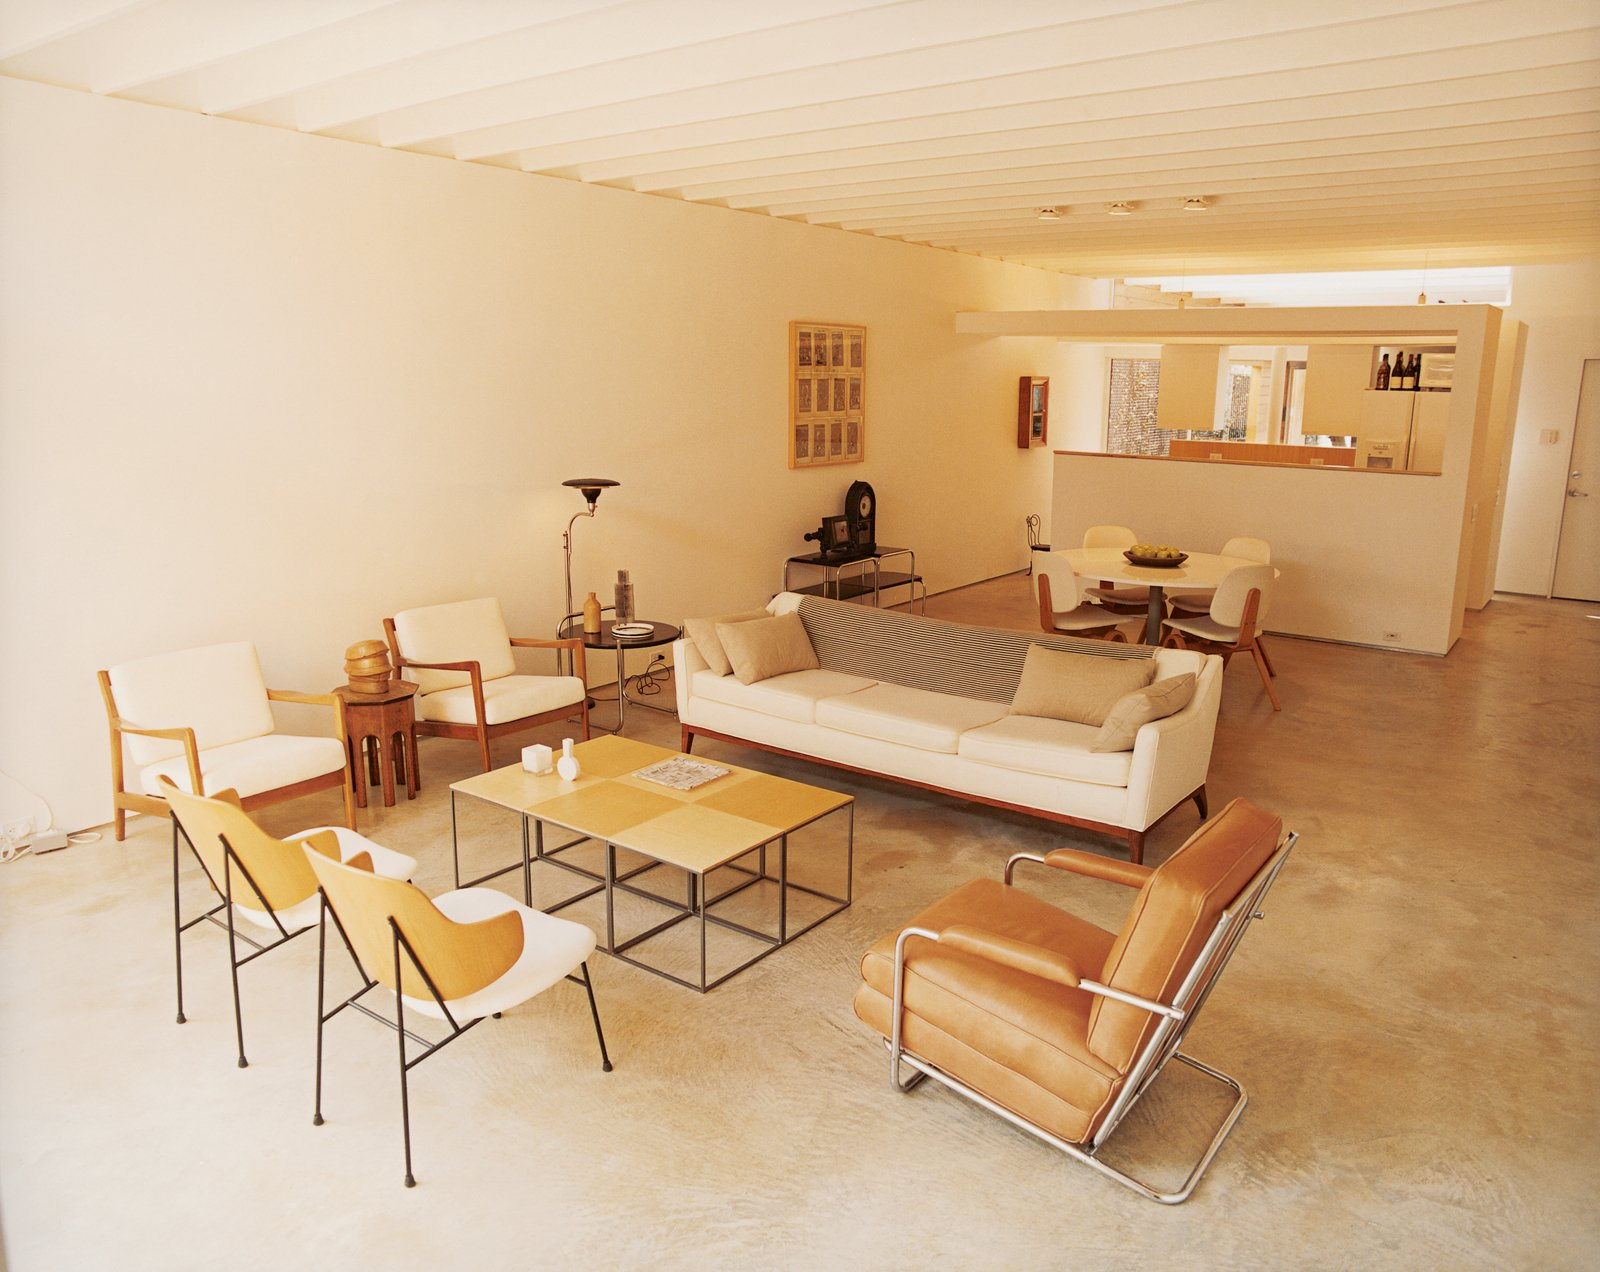 The living room of Baum's 1650-square-foot home features a poured-concrete floor as well as many vintage finds and artifacts from his travels. The sidechairs in the foreground are by Ib Kofod-Larsen and the leather chair is by Gilbert Rohde.  Photo 2 of 9 in Bringing Families Back to Downtown Dallas